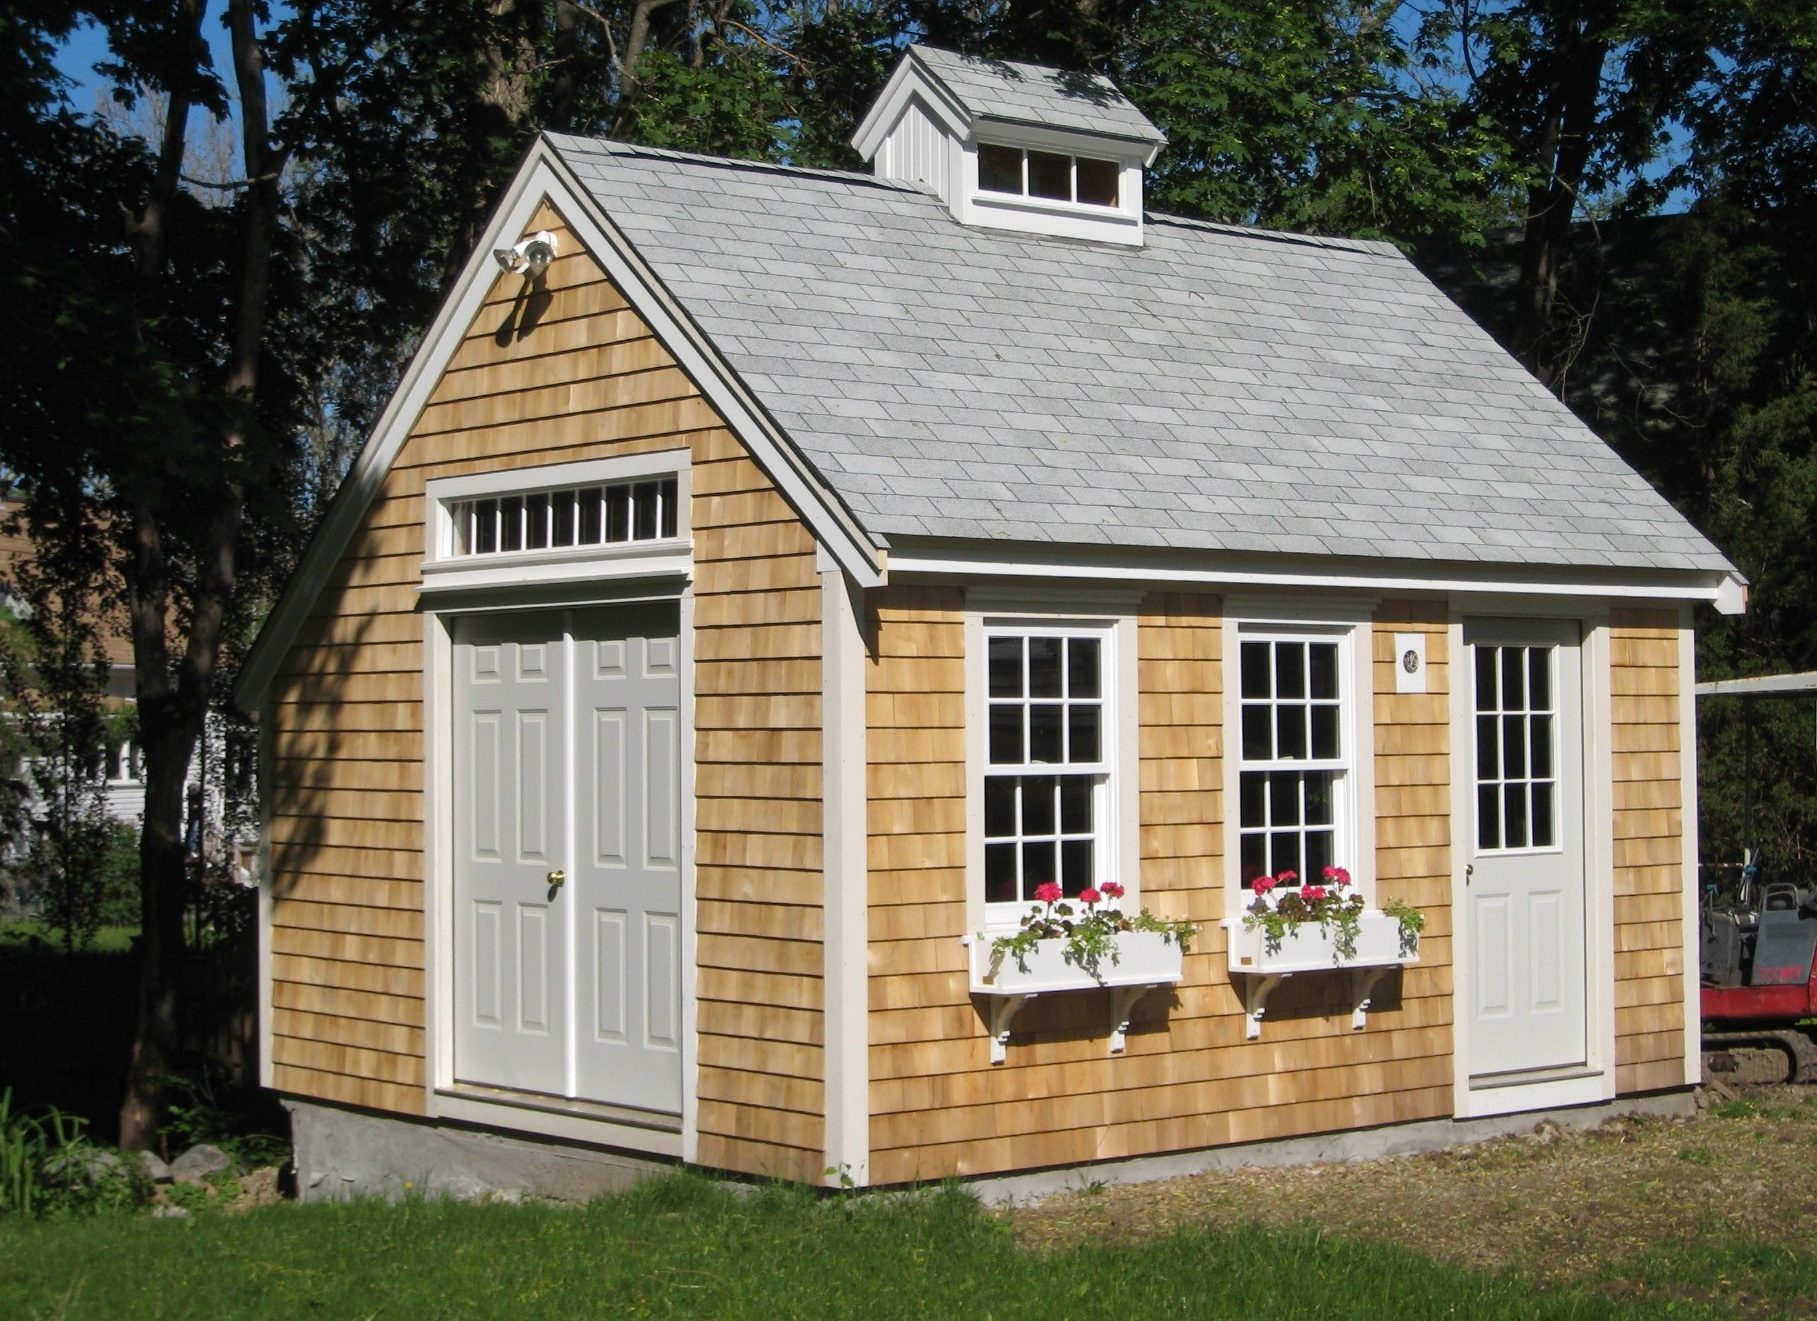 garden shed design. Fairytale Garden Sheds Backyards  30 Magical